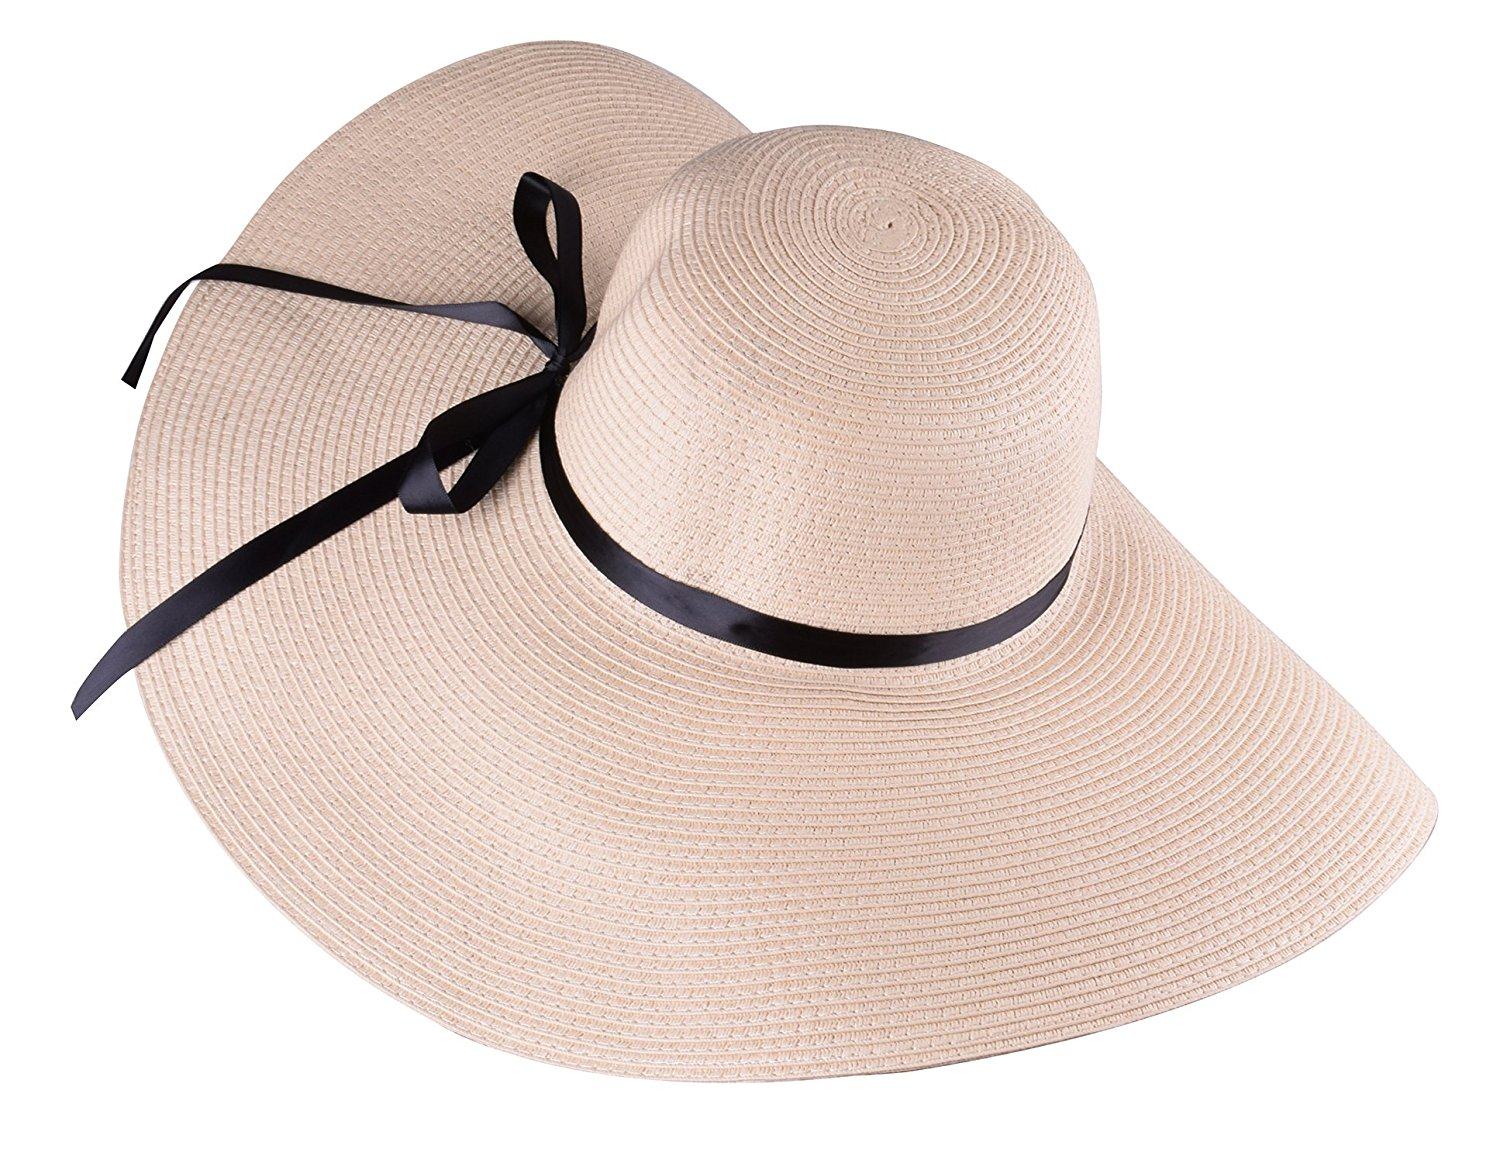 Beige Women Straw Hat Big Sun Hats Decorated with Black Ribbon ... 696414ba6d5